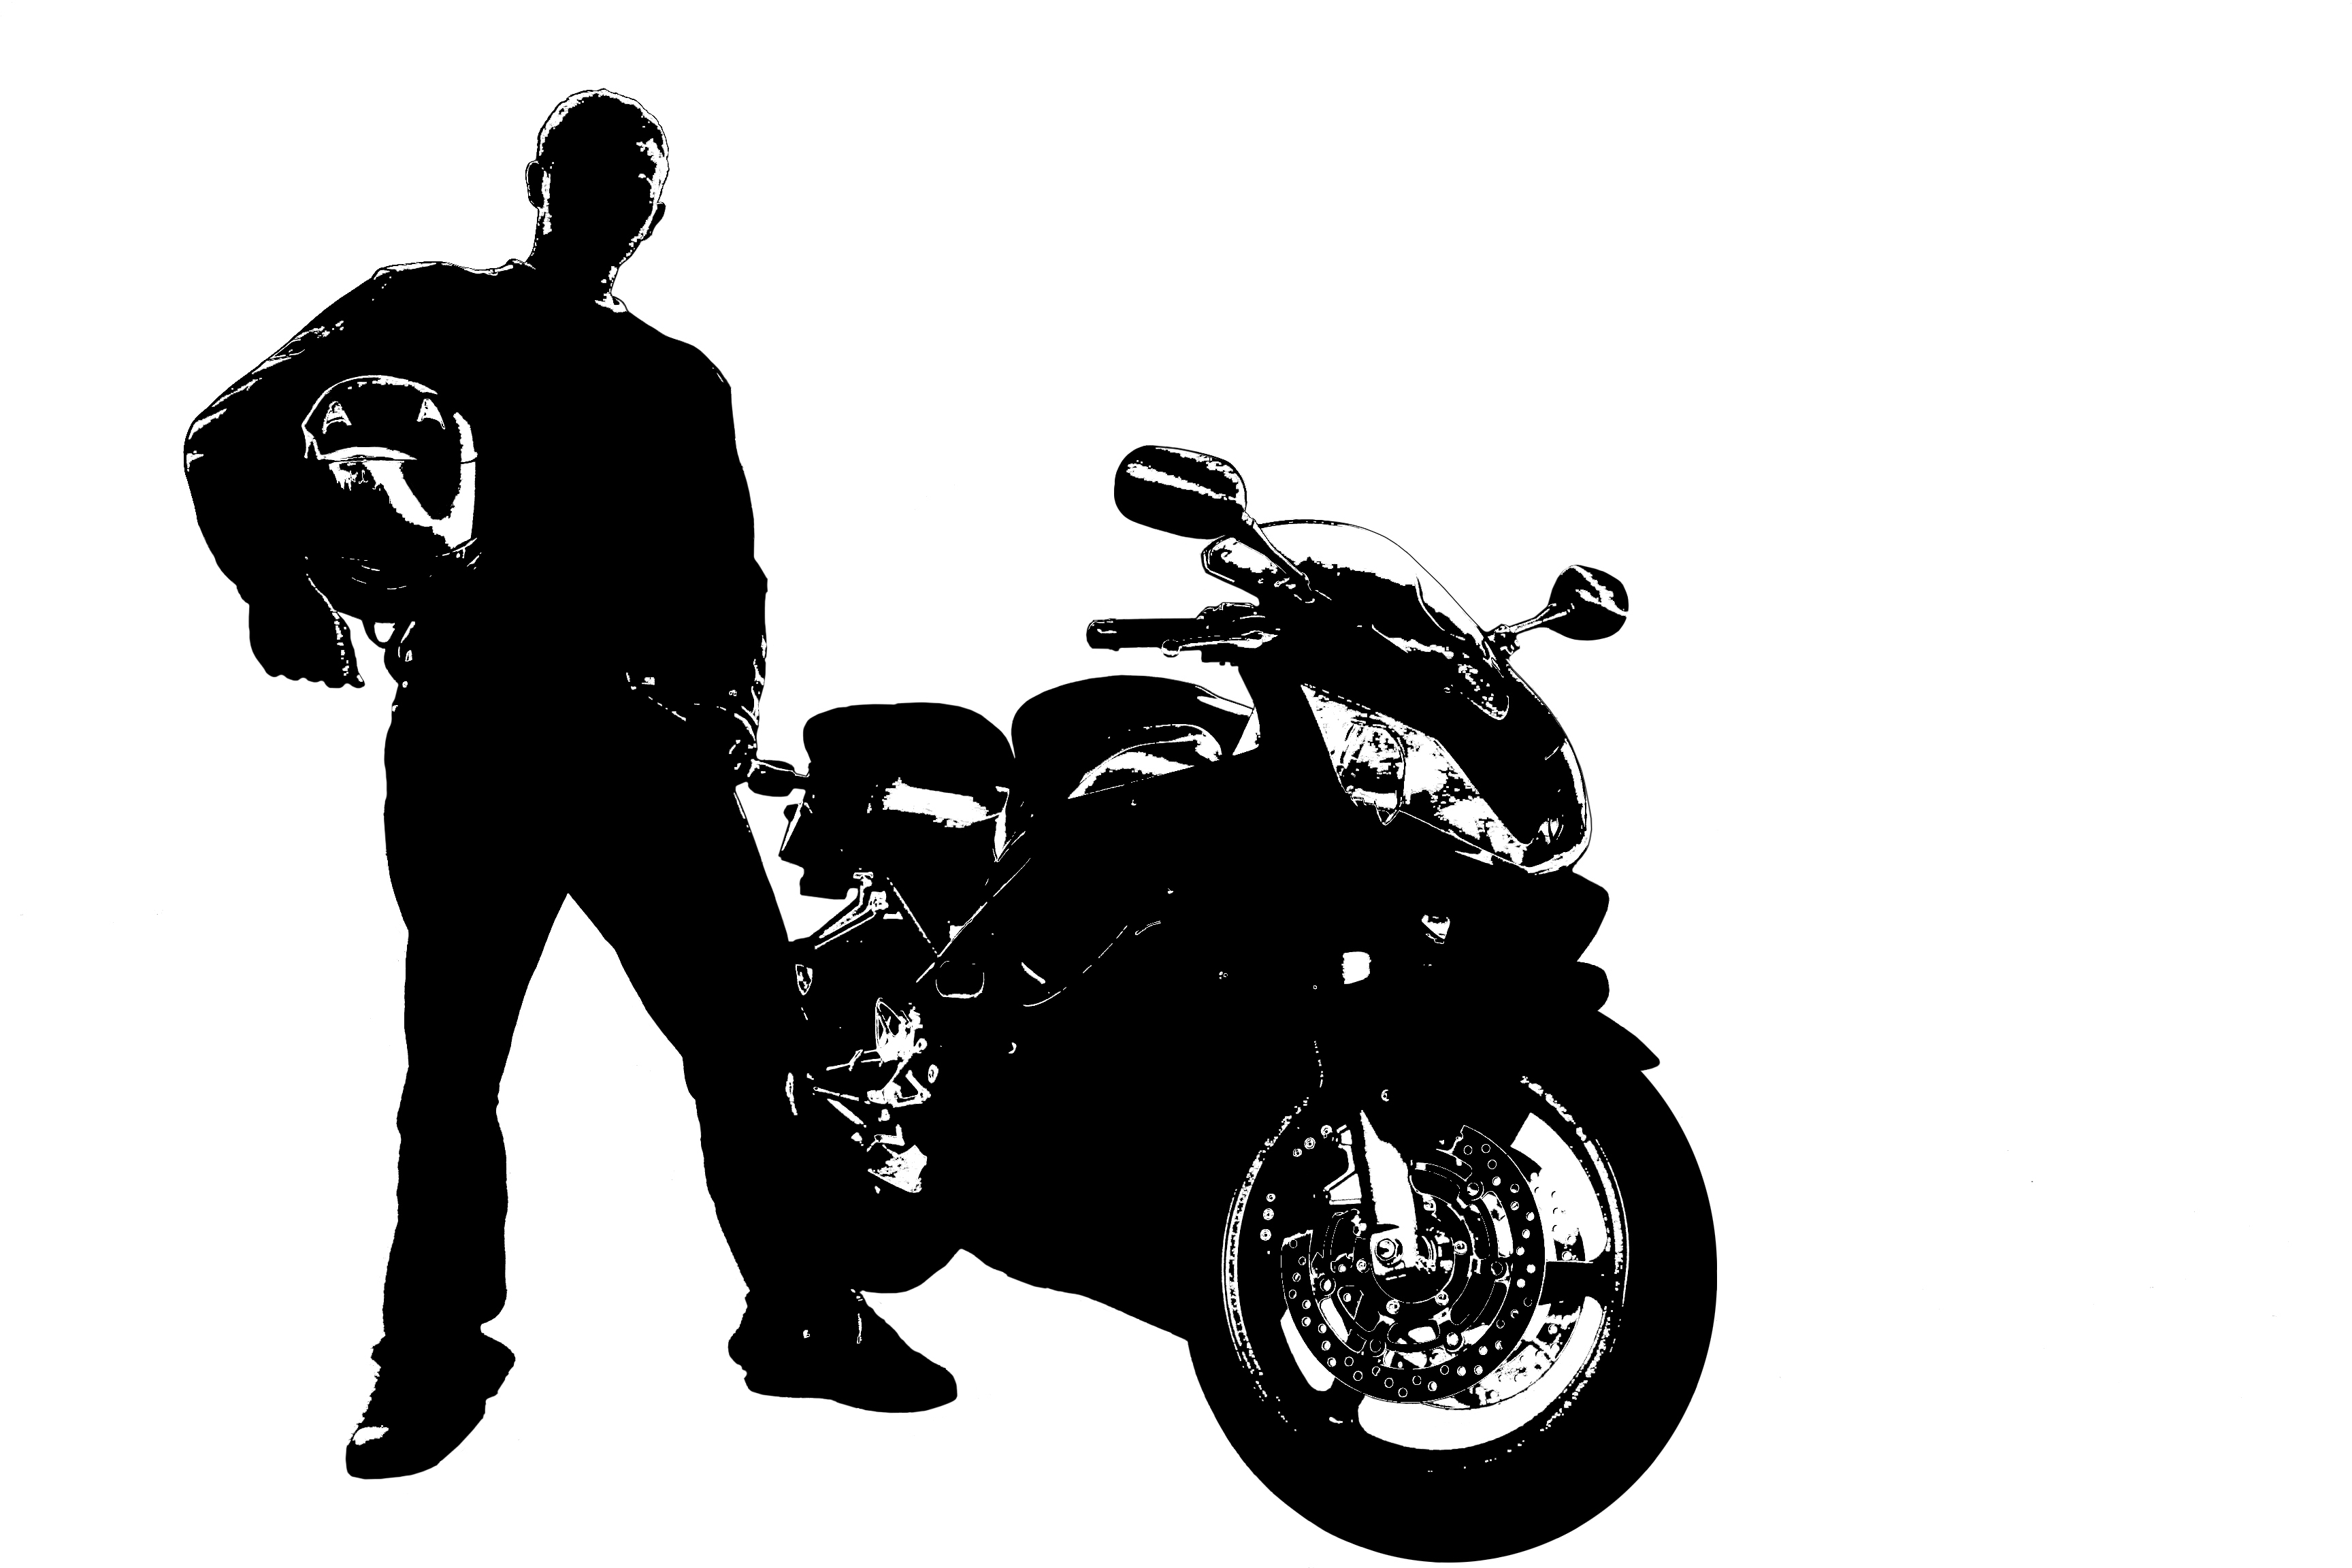 A man standing next to his motorcycle